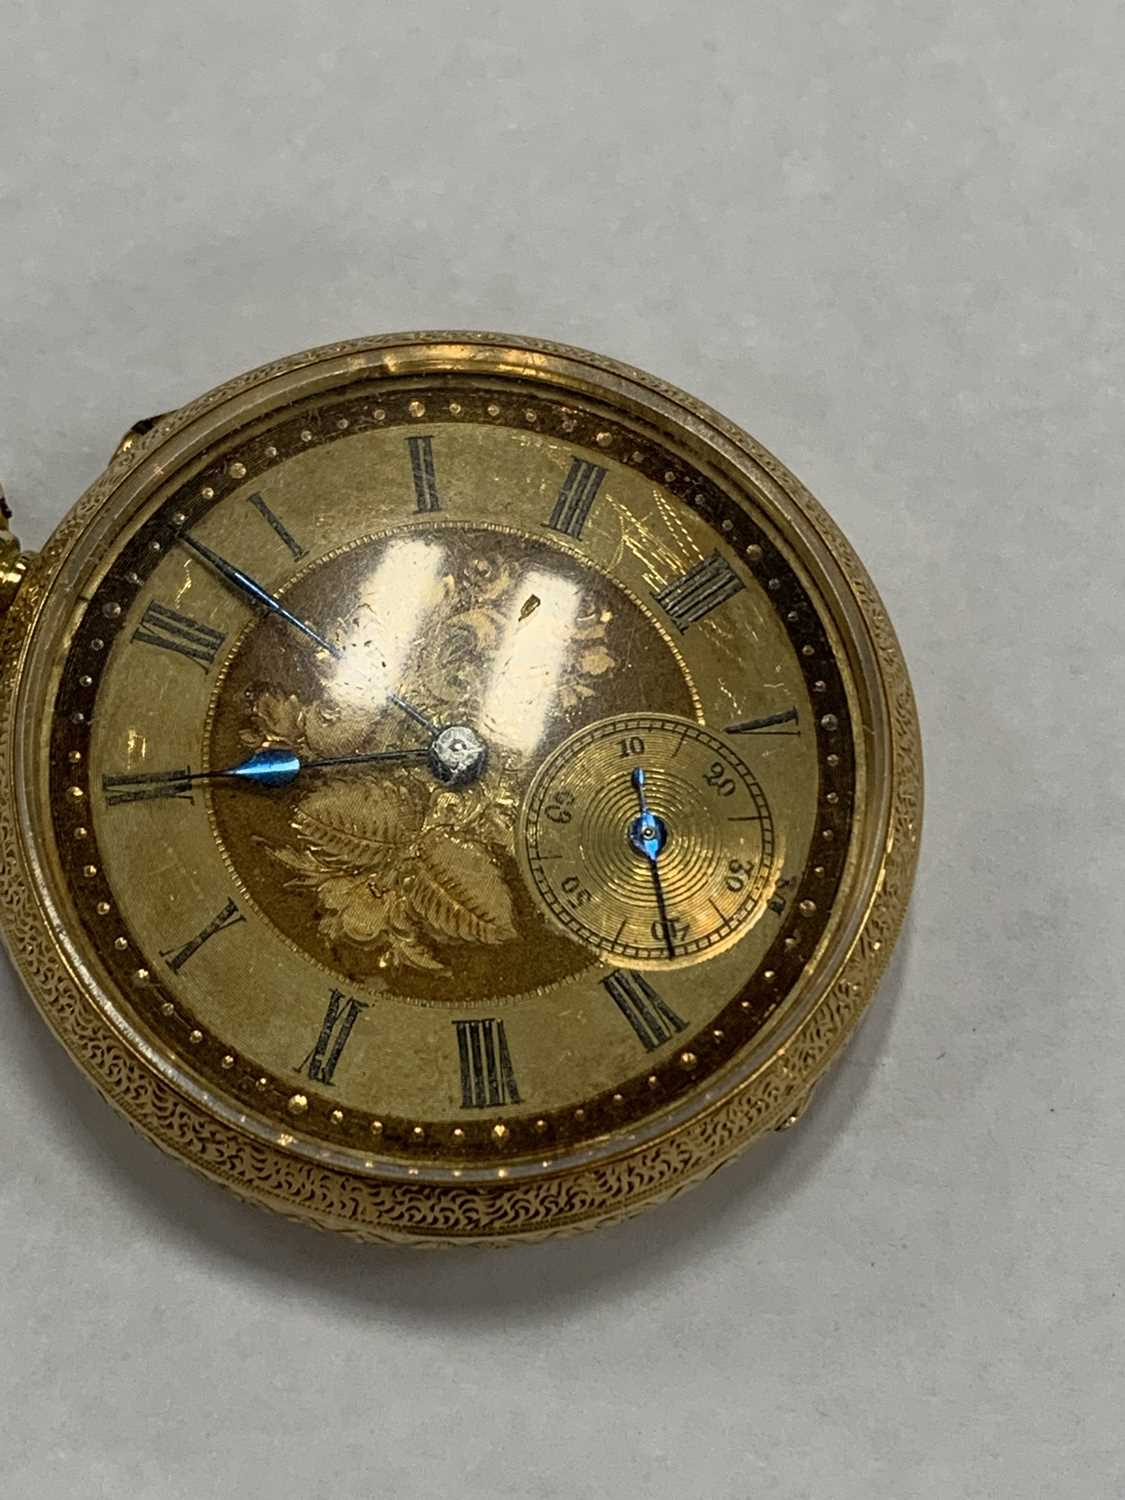 A continental 18k gold open face fob watch - Image 2 of 8